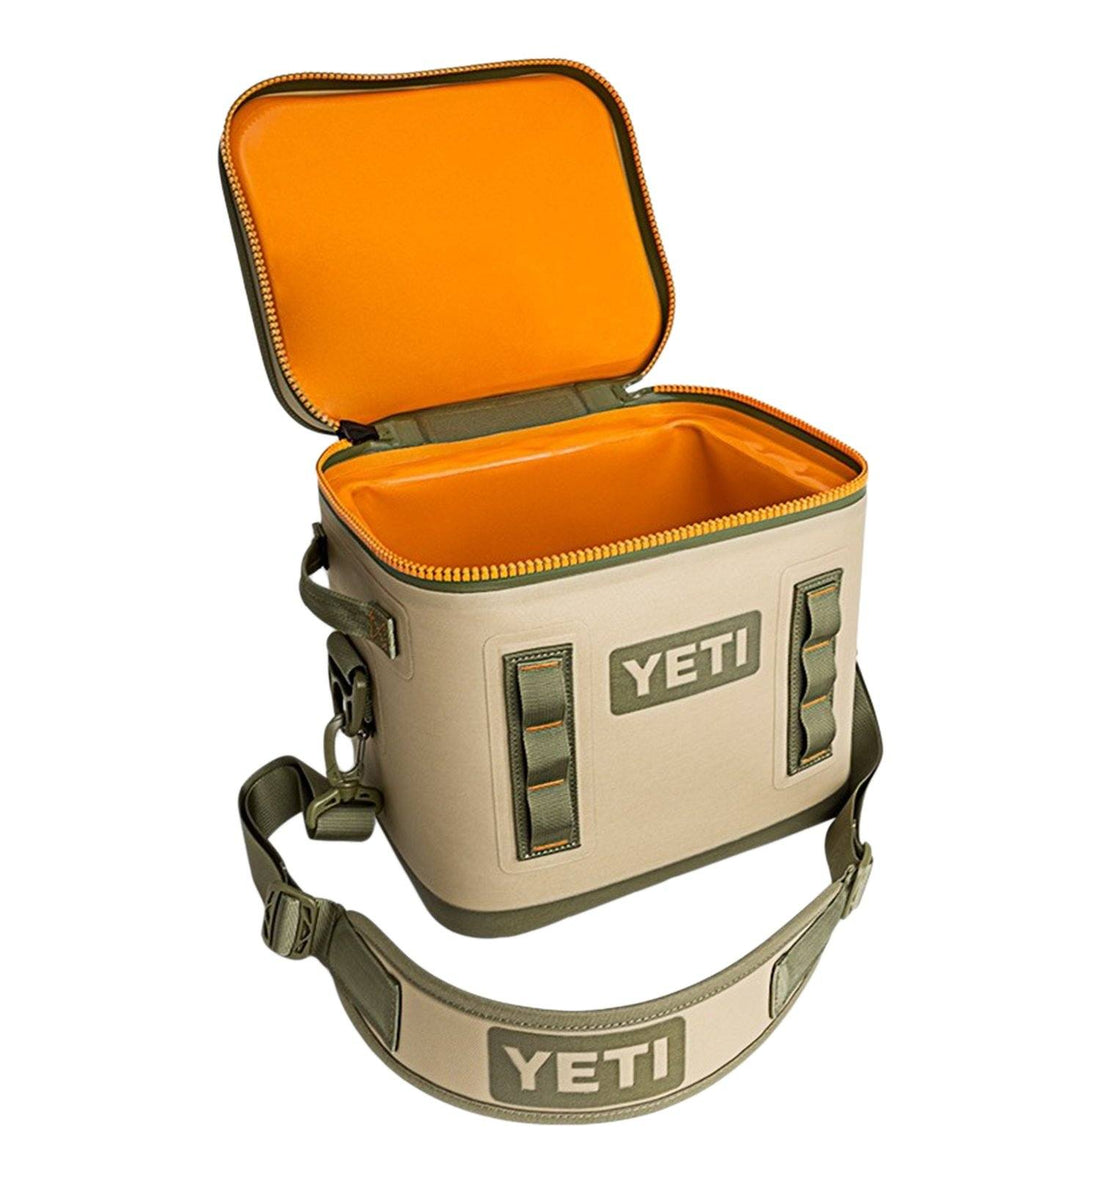 Yeti Hopper Flip 12 - Outdoor Living/Travel - Iron and Resin